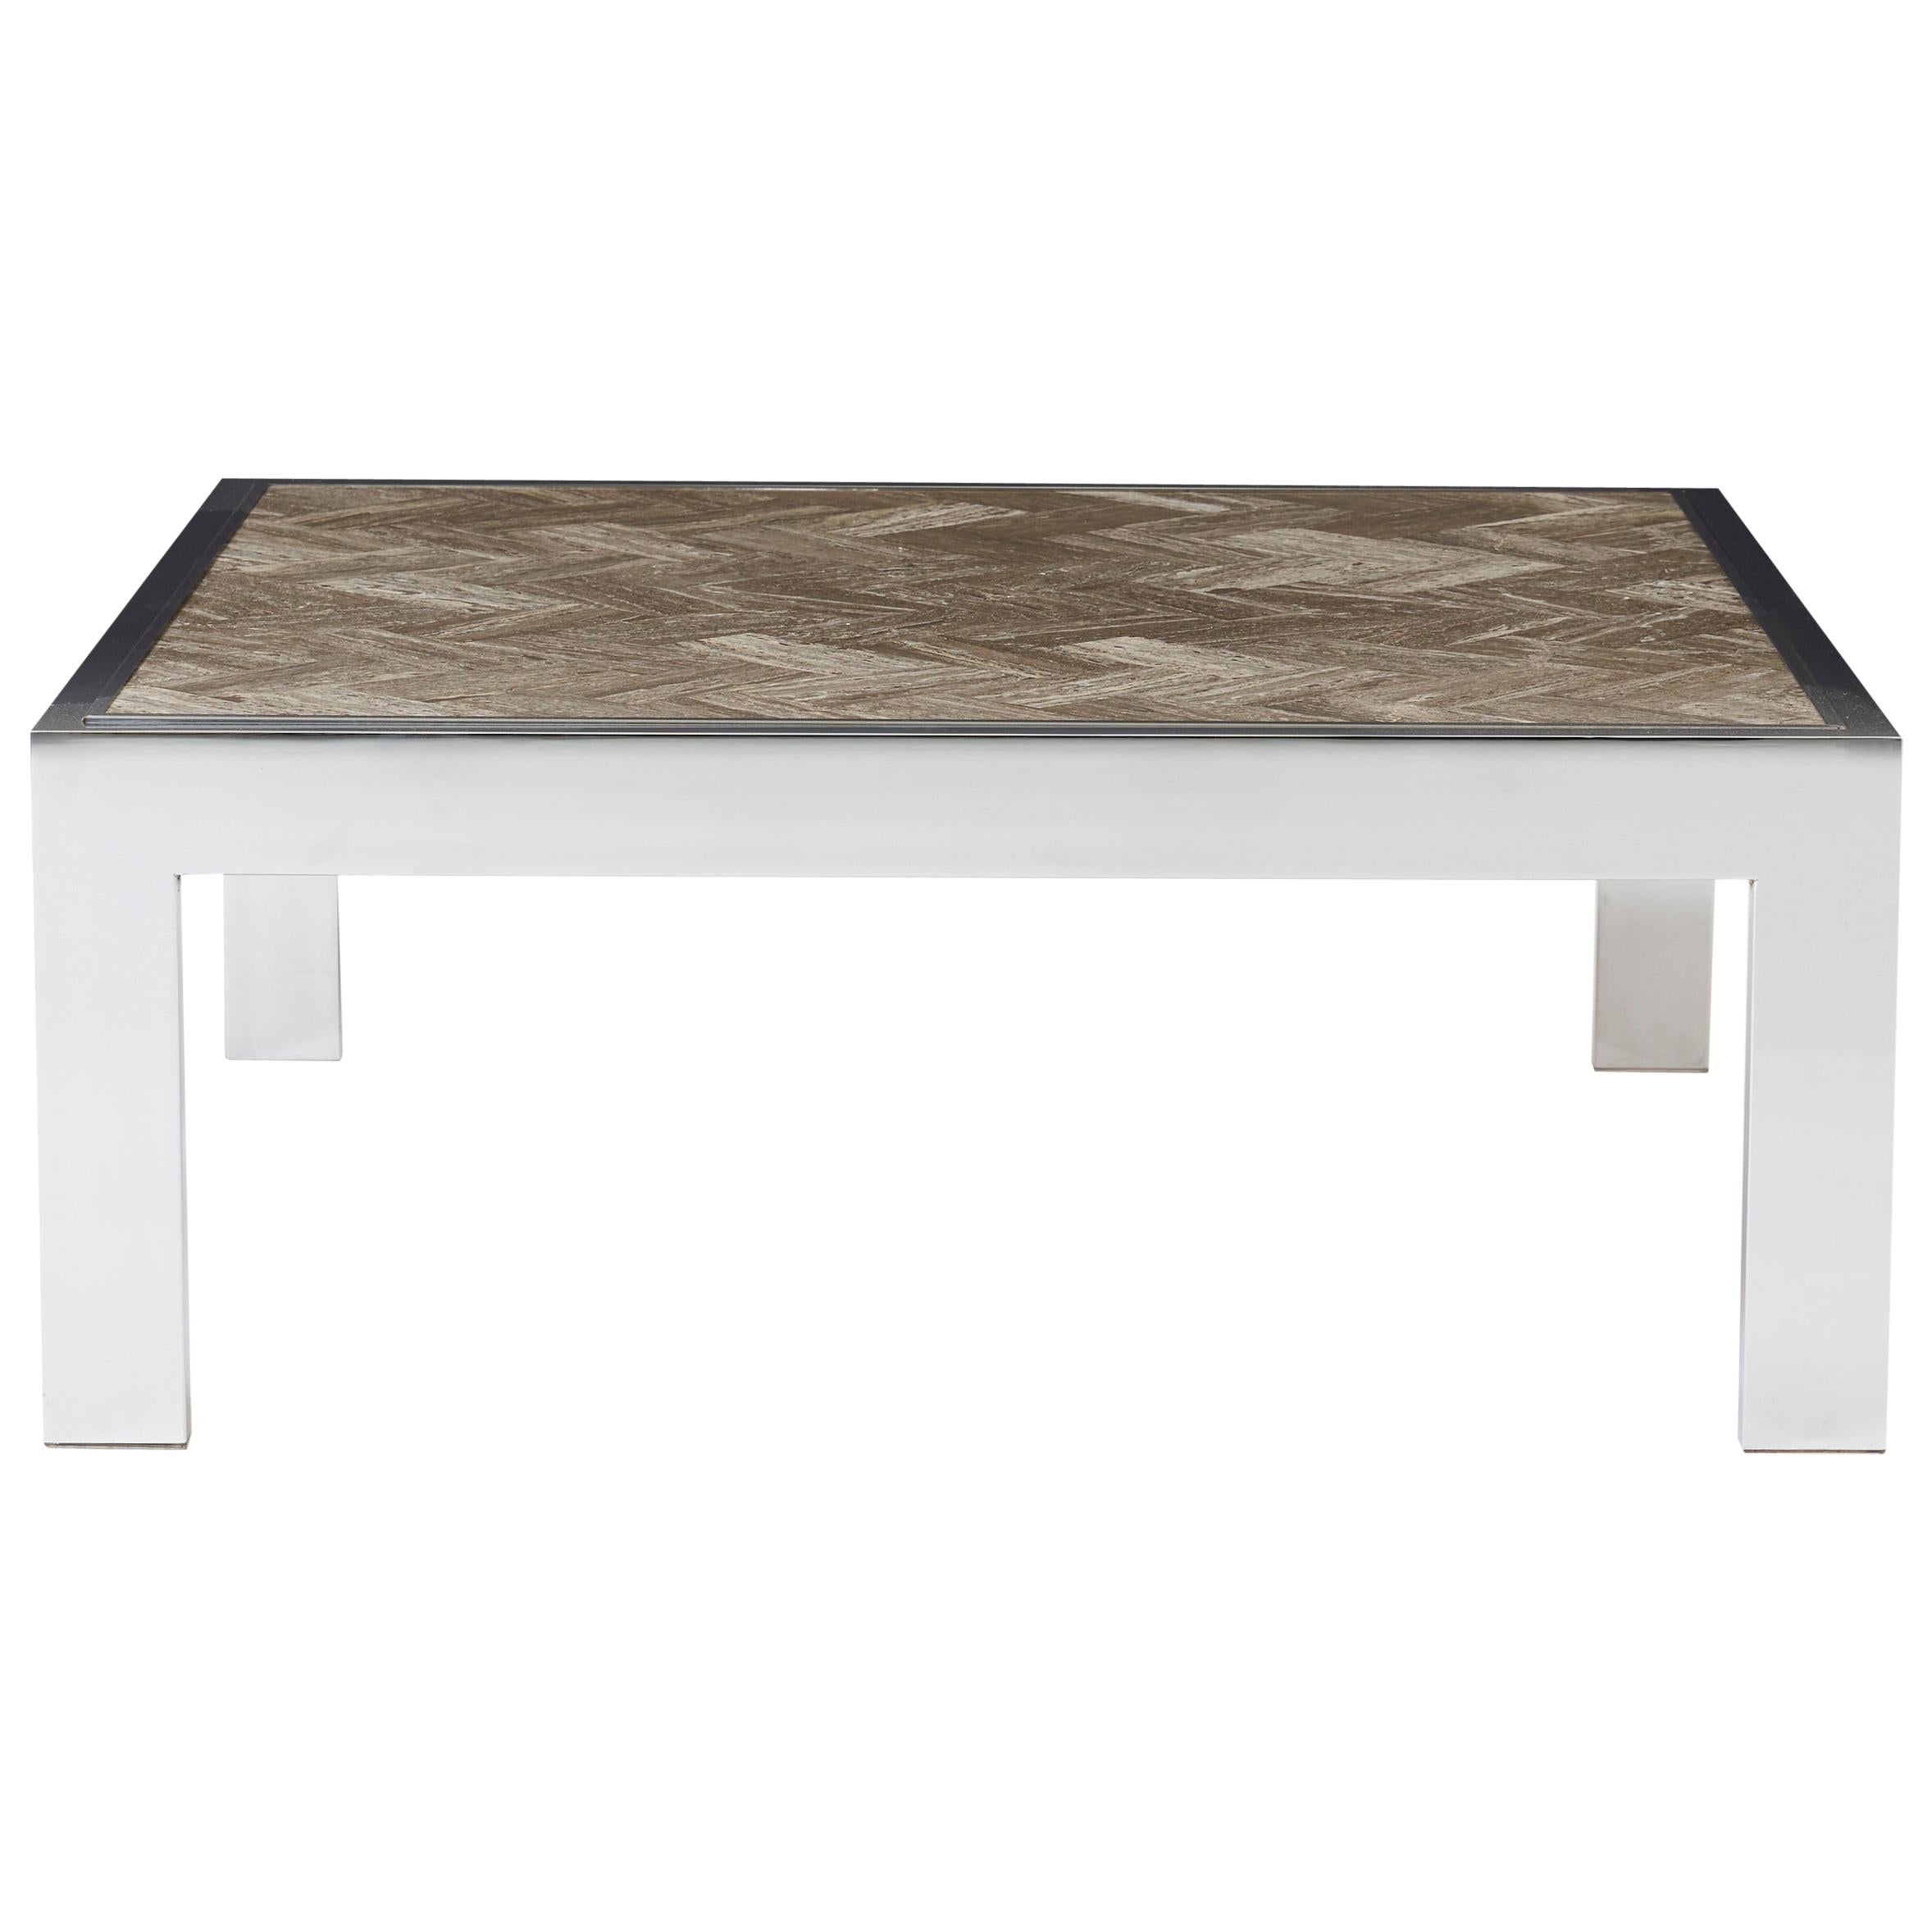 Chrome and Marble Cocktail Table, Leon Rosen for Pace